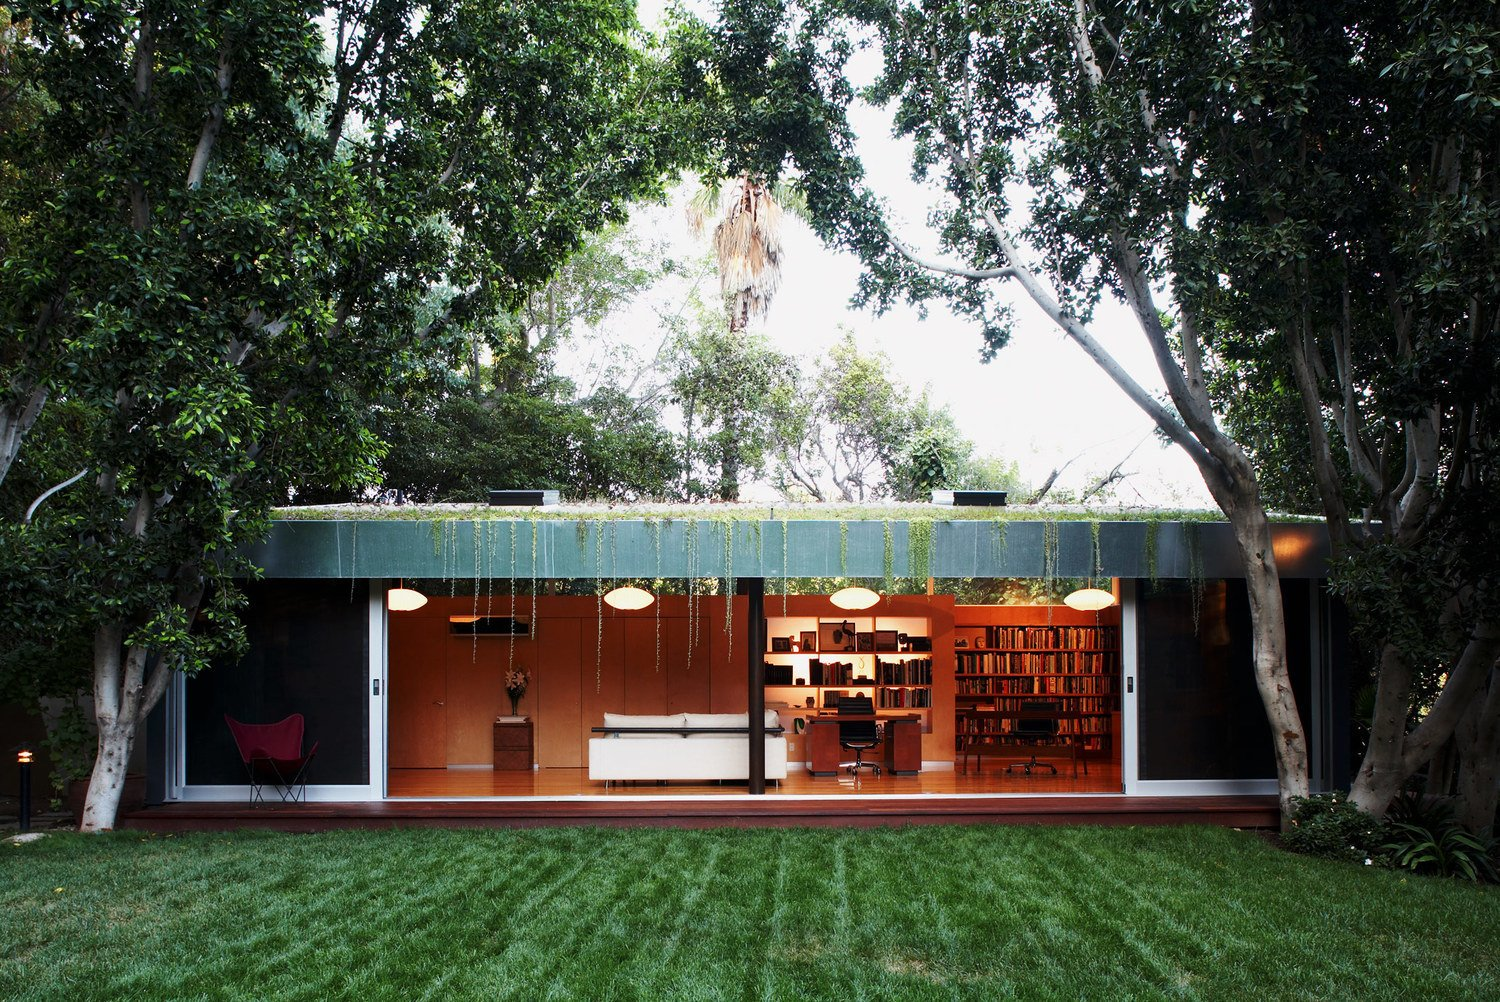 #LushHouse #modern #midcentury #hillside #seclusion #lighting #exterior #outside #landscape #plants #trees #interior #furniture #booskshelves #detail #BeverlyHills #KingsleyStephensonArchitecture  Lush House by Kingsley Stephenson Architecture